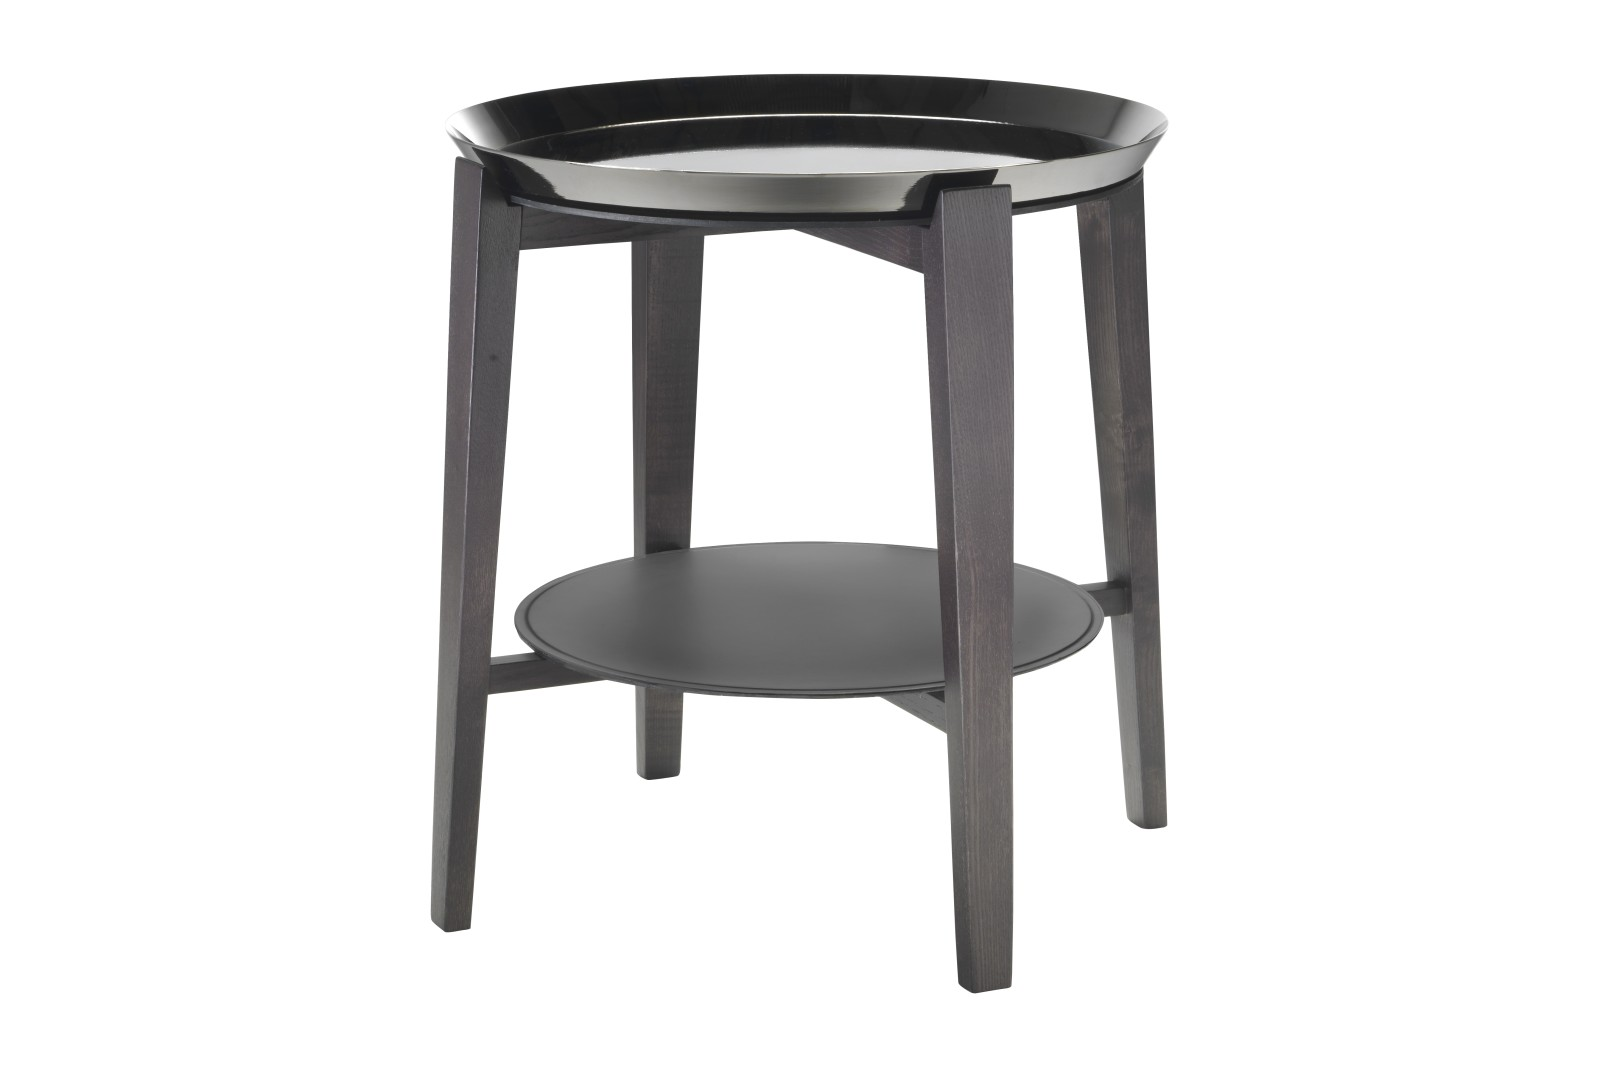 Cabare Side Table Wood Finishes Ashwood Stained Coffee, Hide Leather - Suede Russian Red 5008, Black